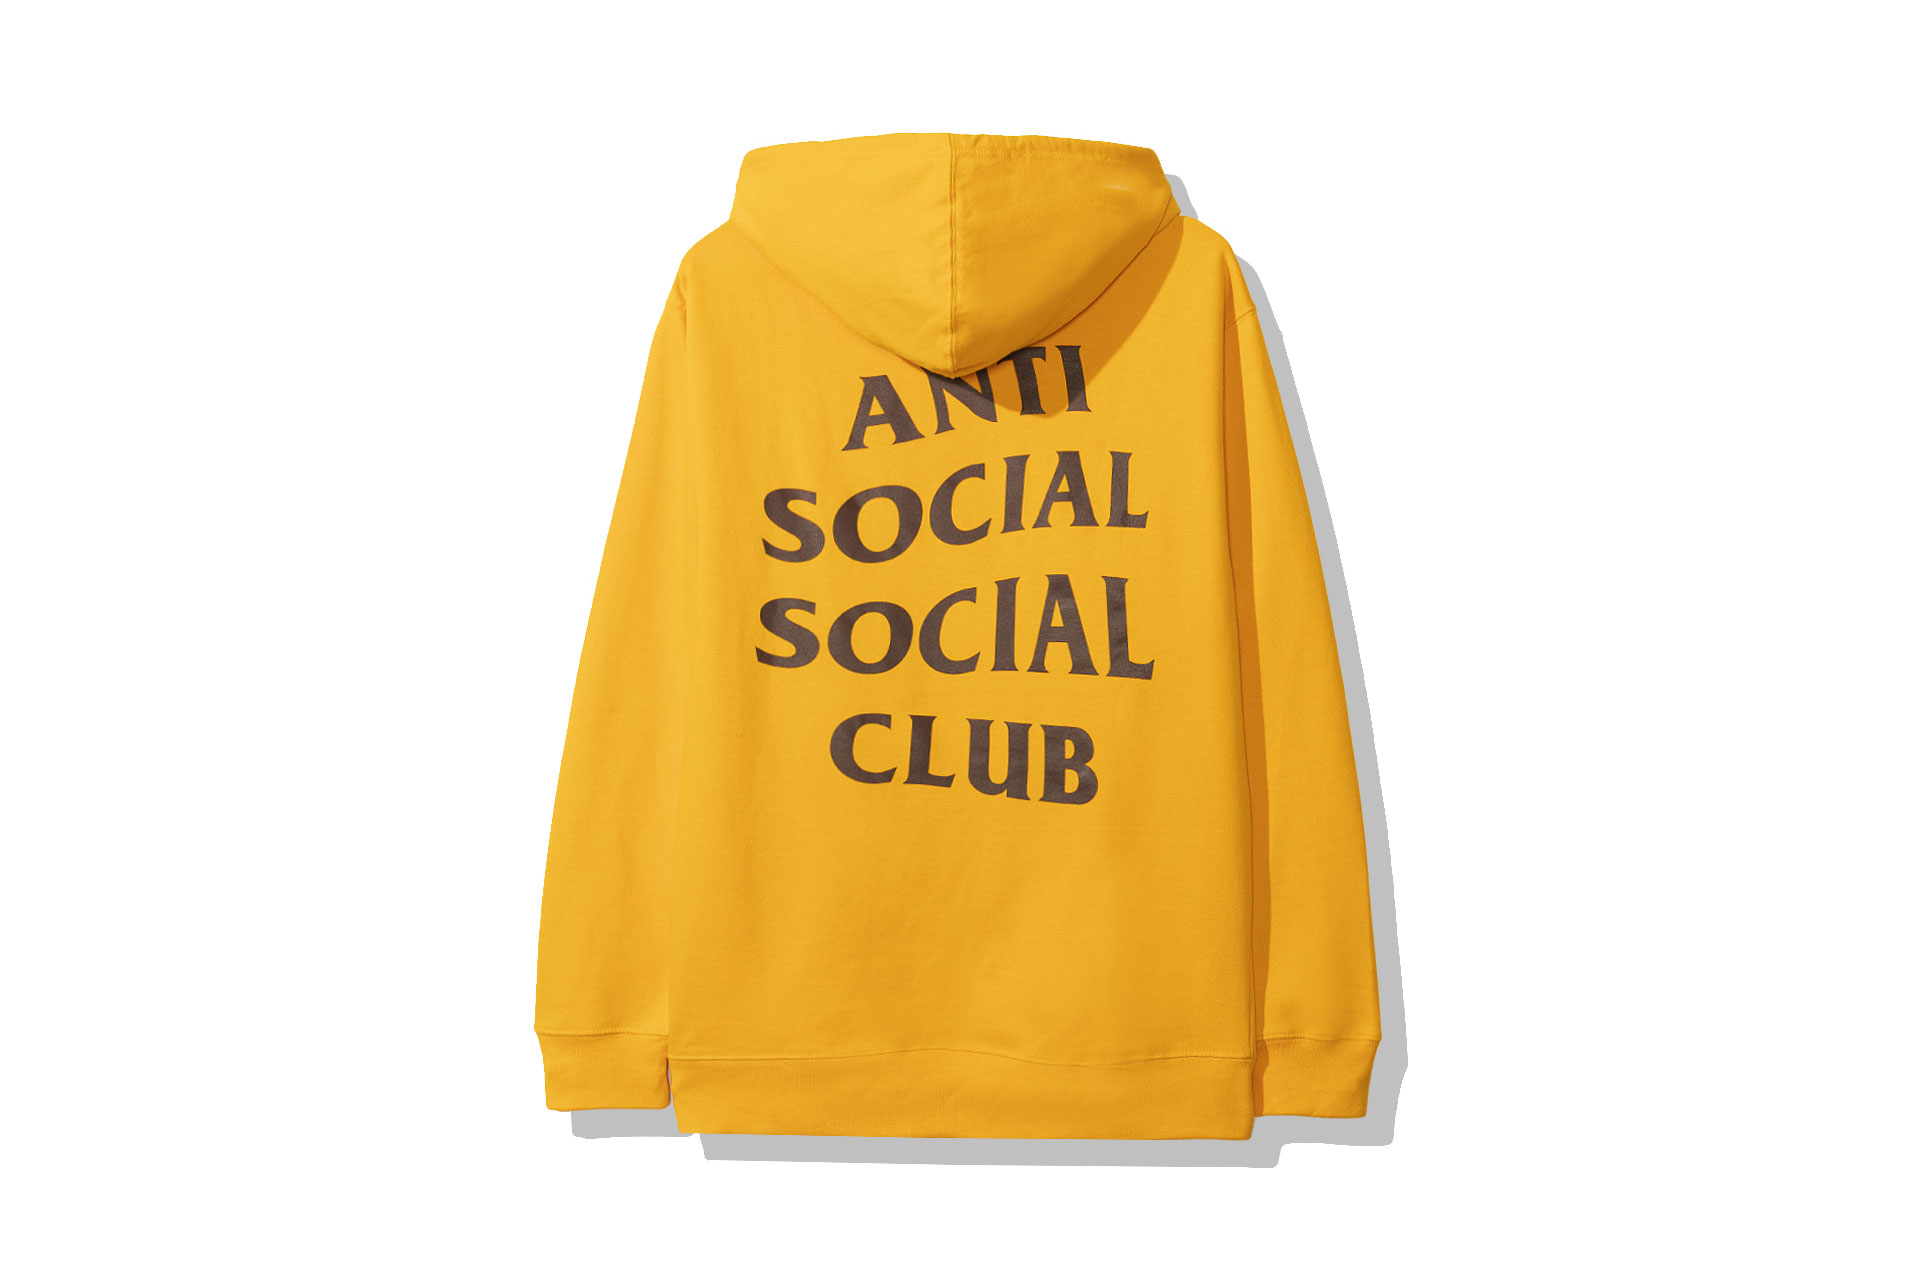 anti-social-social-club-fall-winter-2019-still-stressed-collection-playboy-honda-undefeated-6.jpg